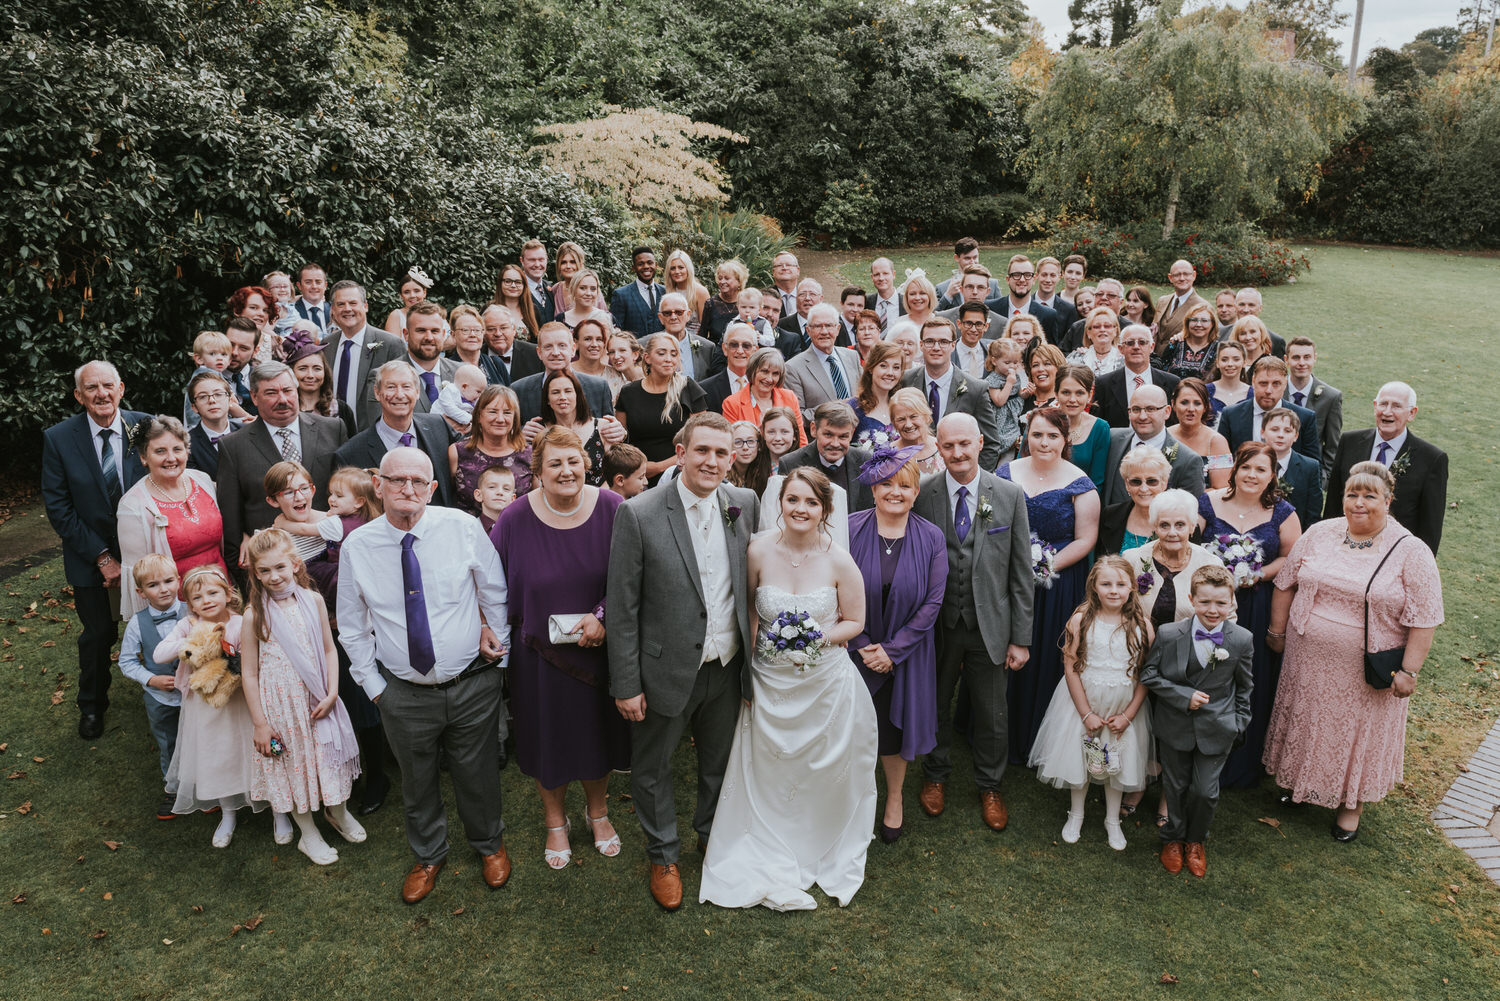 The Average Cost Of A U K Wedding In 2020 And Current Wedding Trends,Traditional Indian Wedding Dresses For Girls